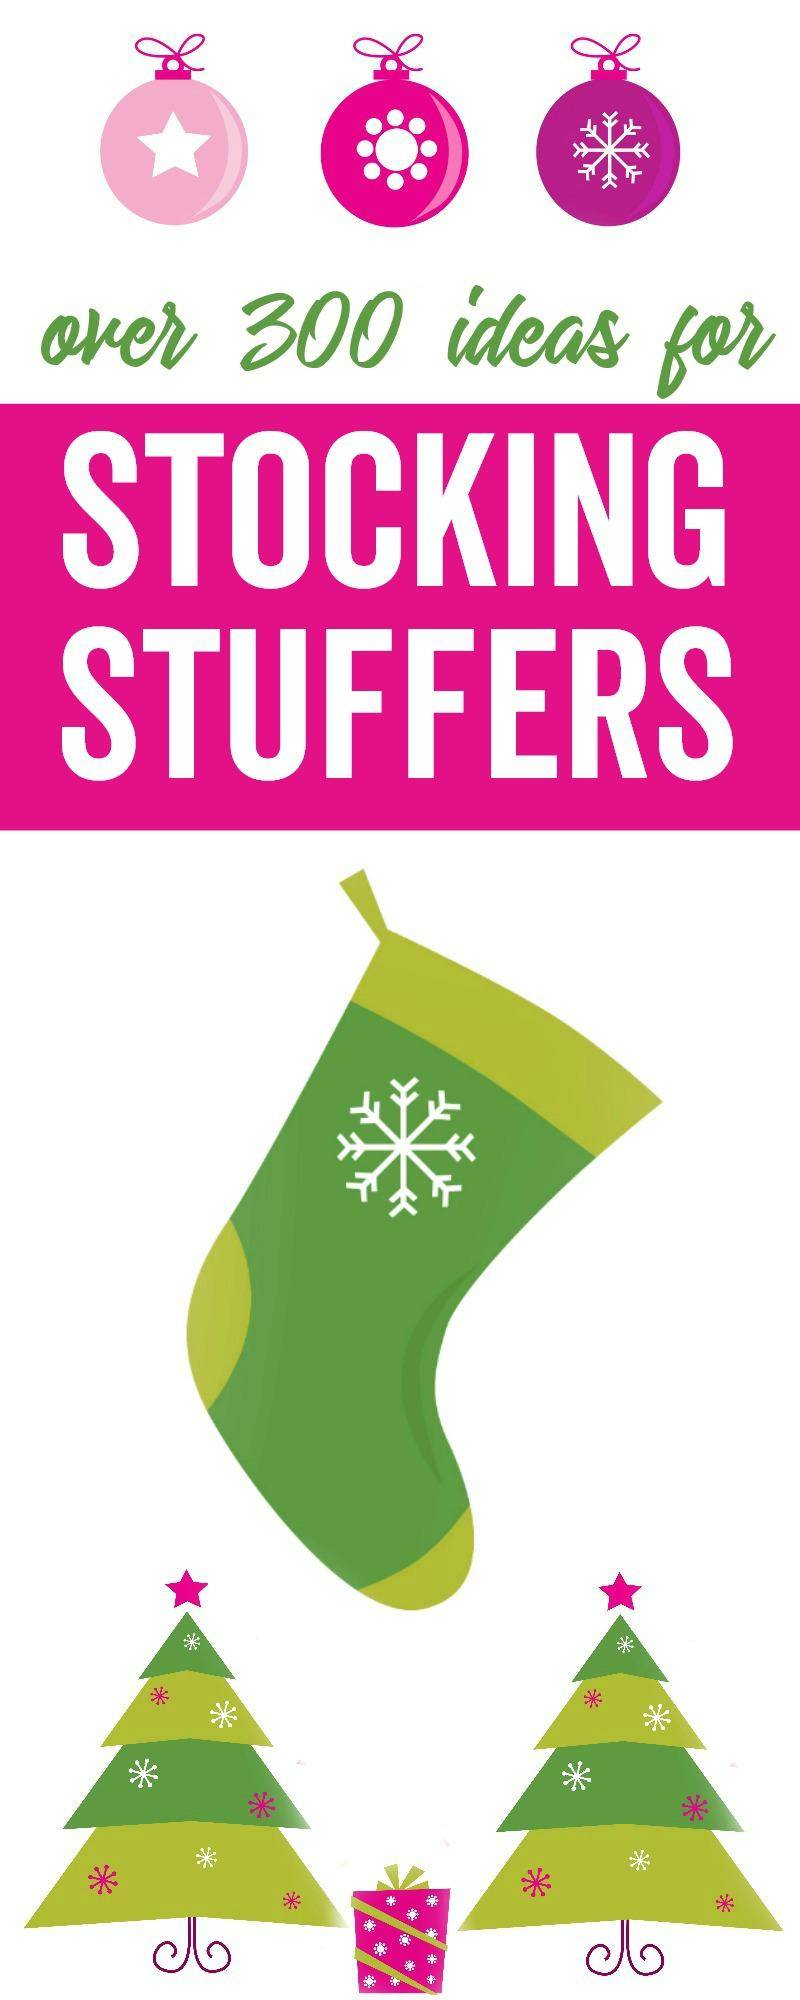 Stunning Stocking Stuffers That Are Inexpensive Over Stocking Stuffer Ideas Under Adult Children Stocking Stuffer Ideas Stocking Stuffer Ideas Under Adults Ny Kids Stocking Stuffer Ideas Kids ideas Stocking Stuffer Ideas For Adults